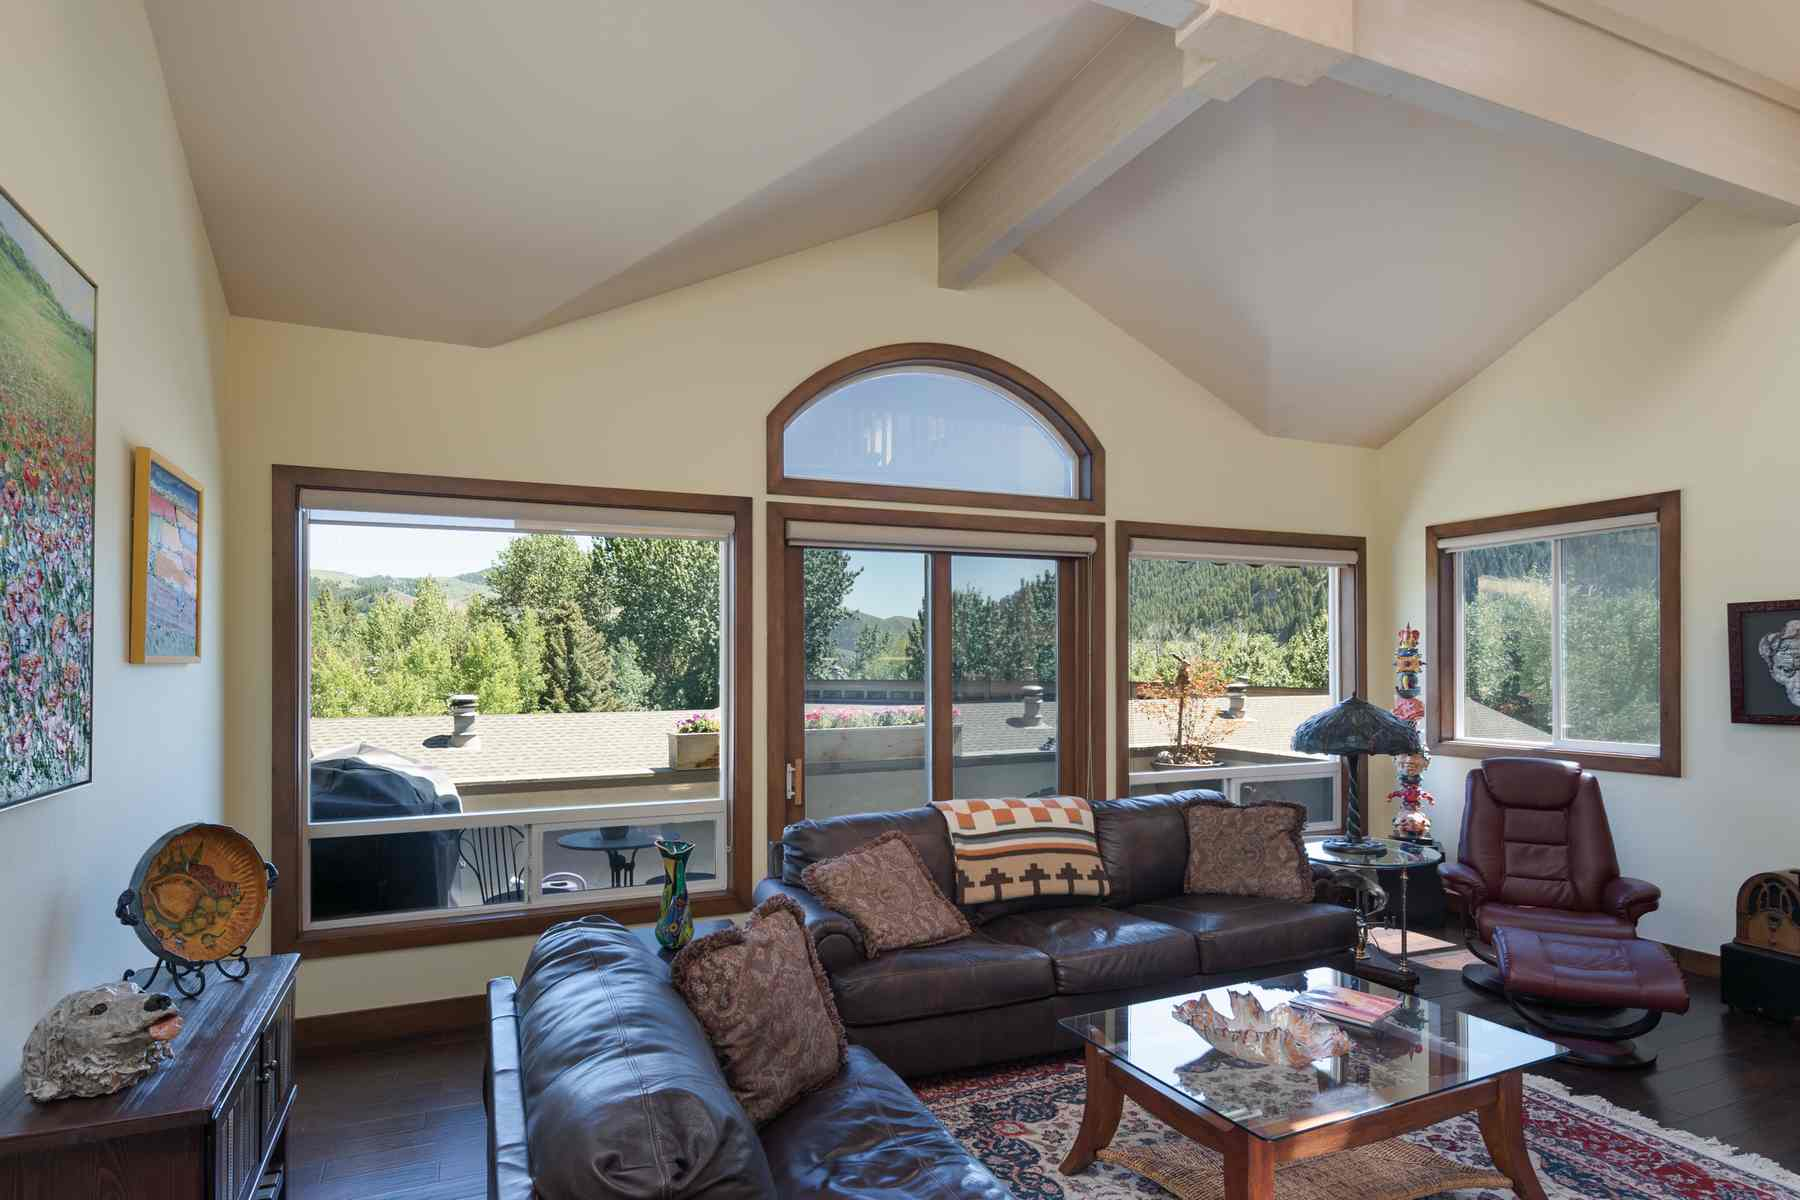 Condominium for Sale at Prime Ketchum Next To Baldy 270 Cottonwood St. #4 Ketchum, Idaho 83340 United States